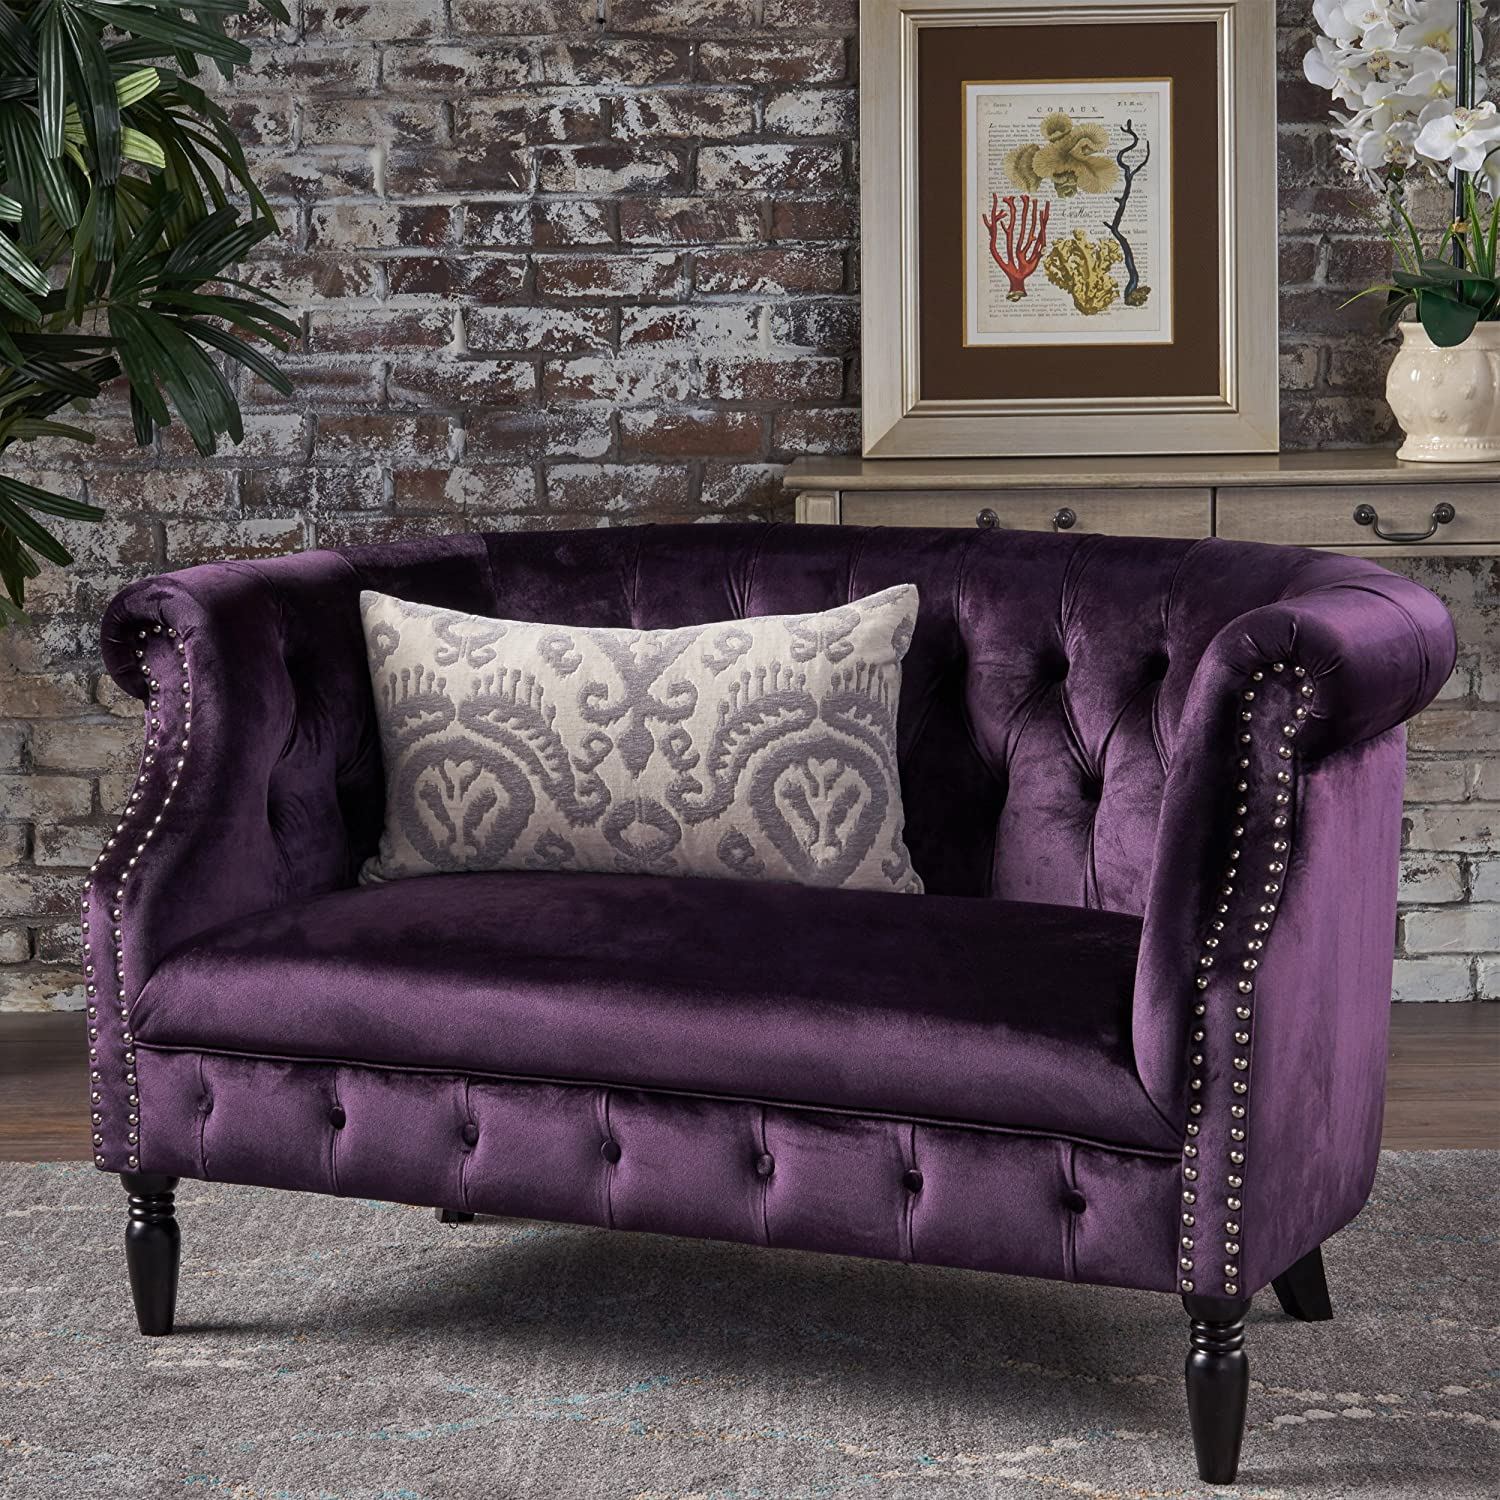 loveseat fabric free plum knight wingback shipping today velvet product christopher overstock tufted leora home garden by